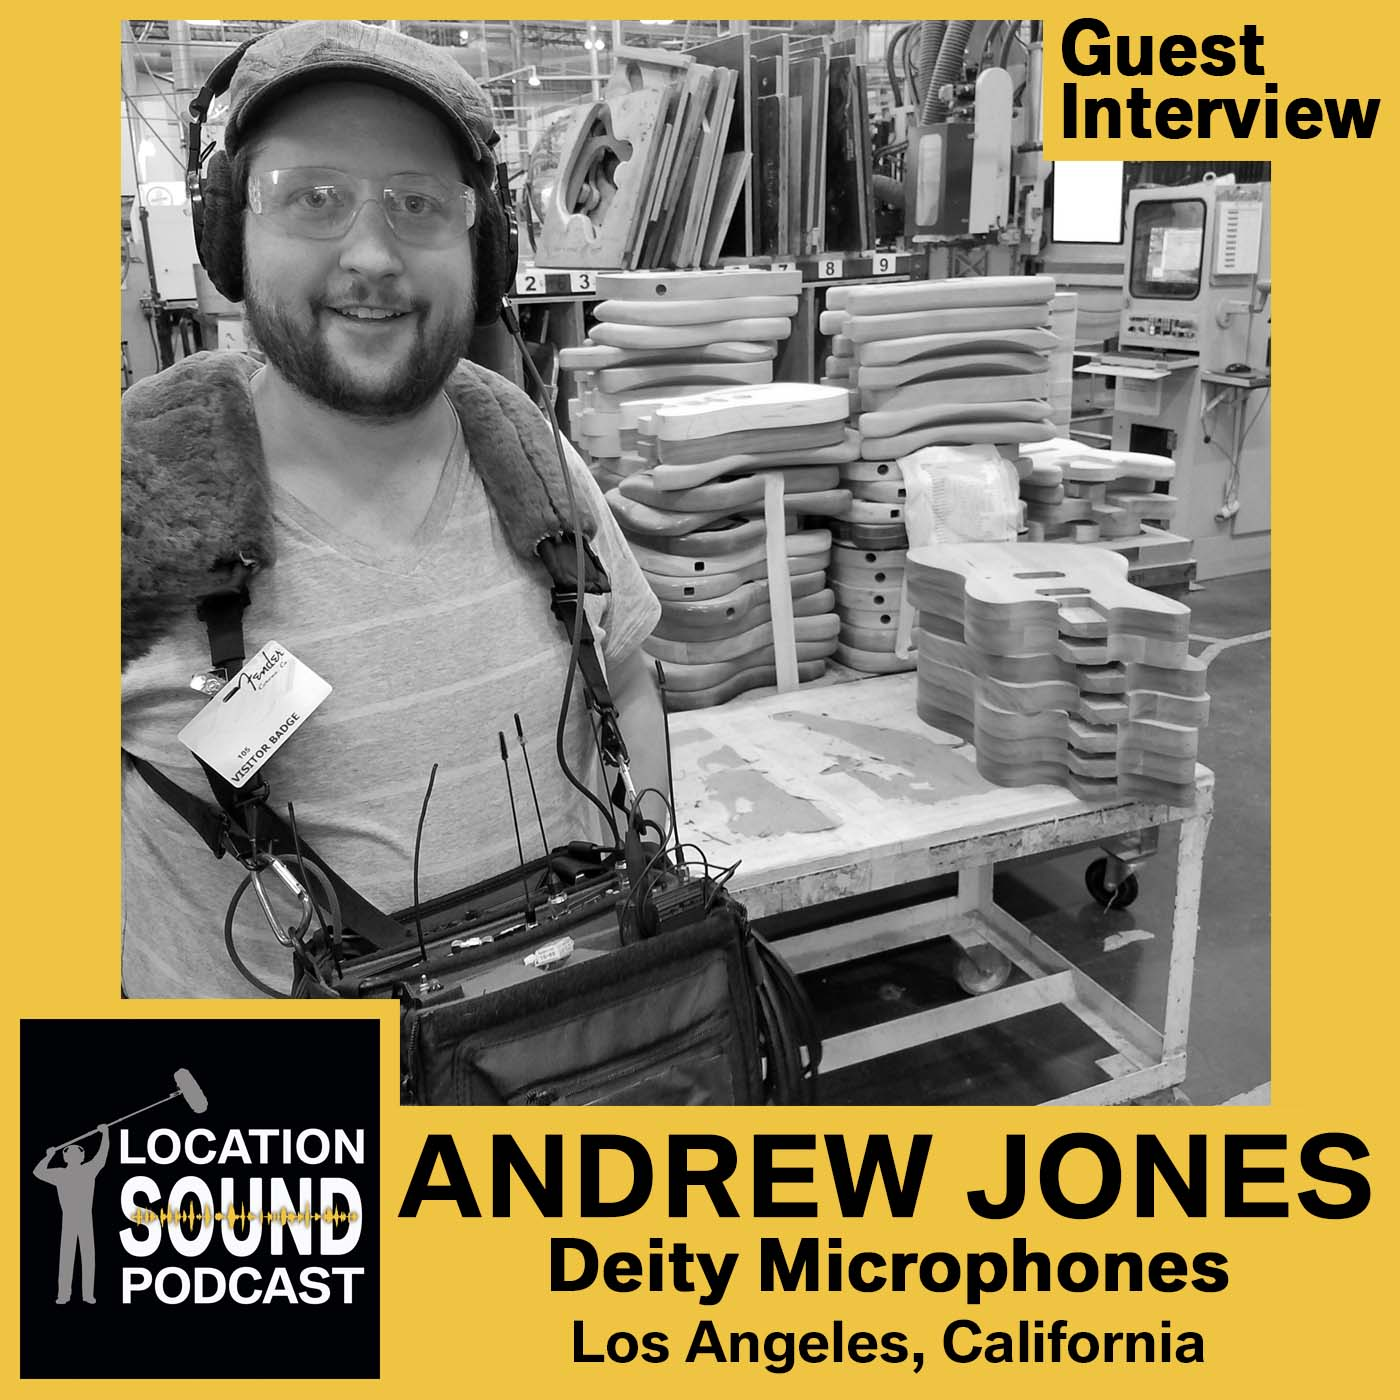 065 Andrew Jones - Deity Microphones